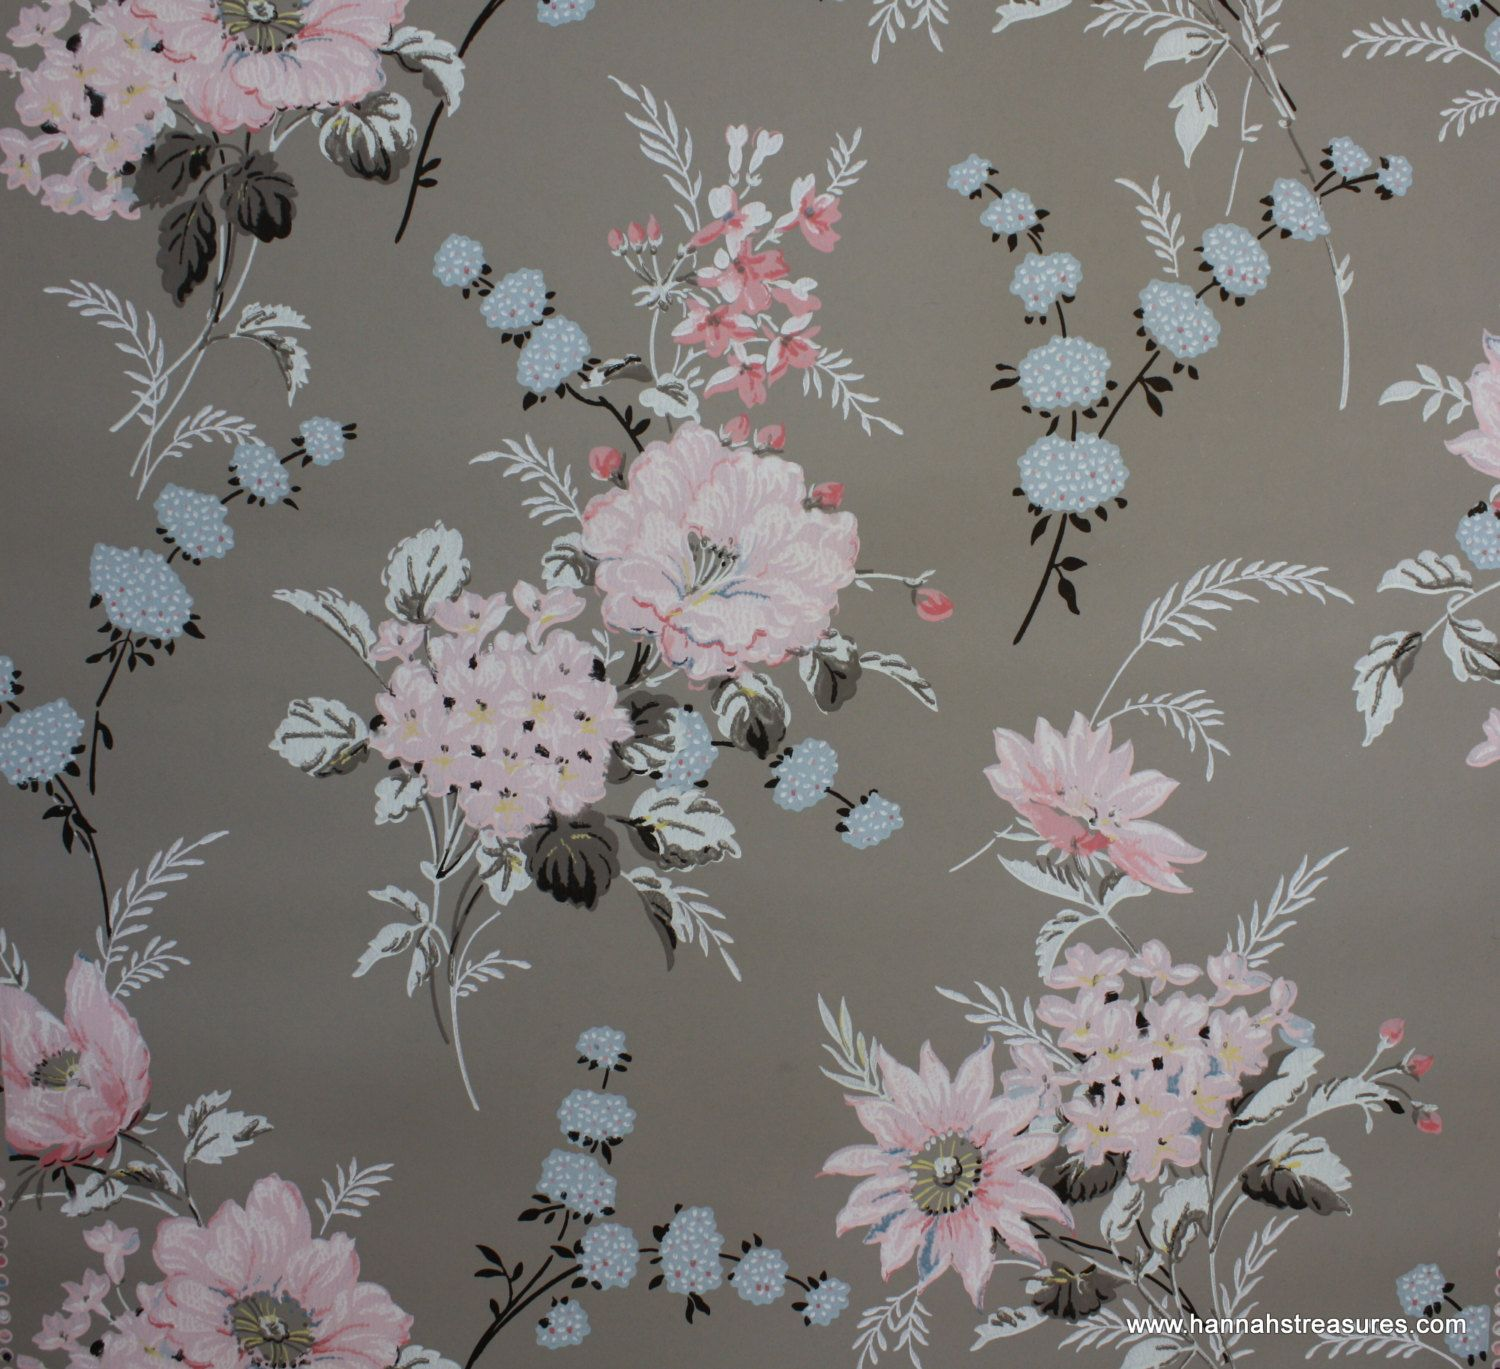 1940's Vintage Wallpaper Floral Wallpaper with Large